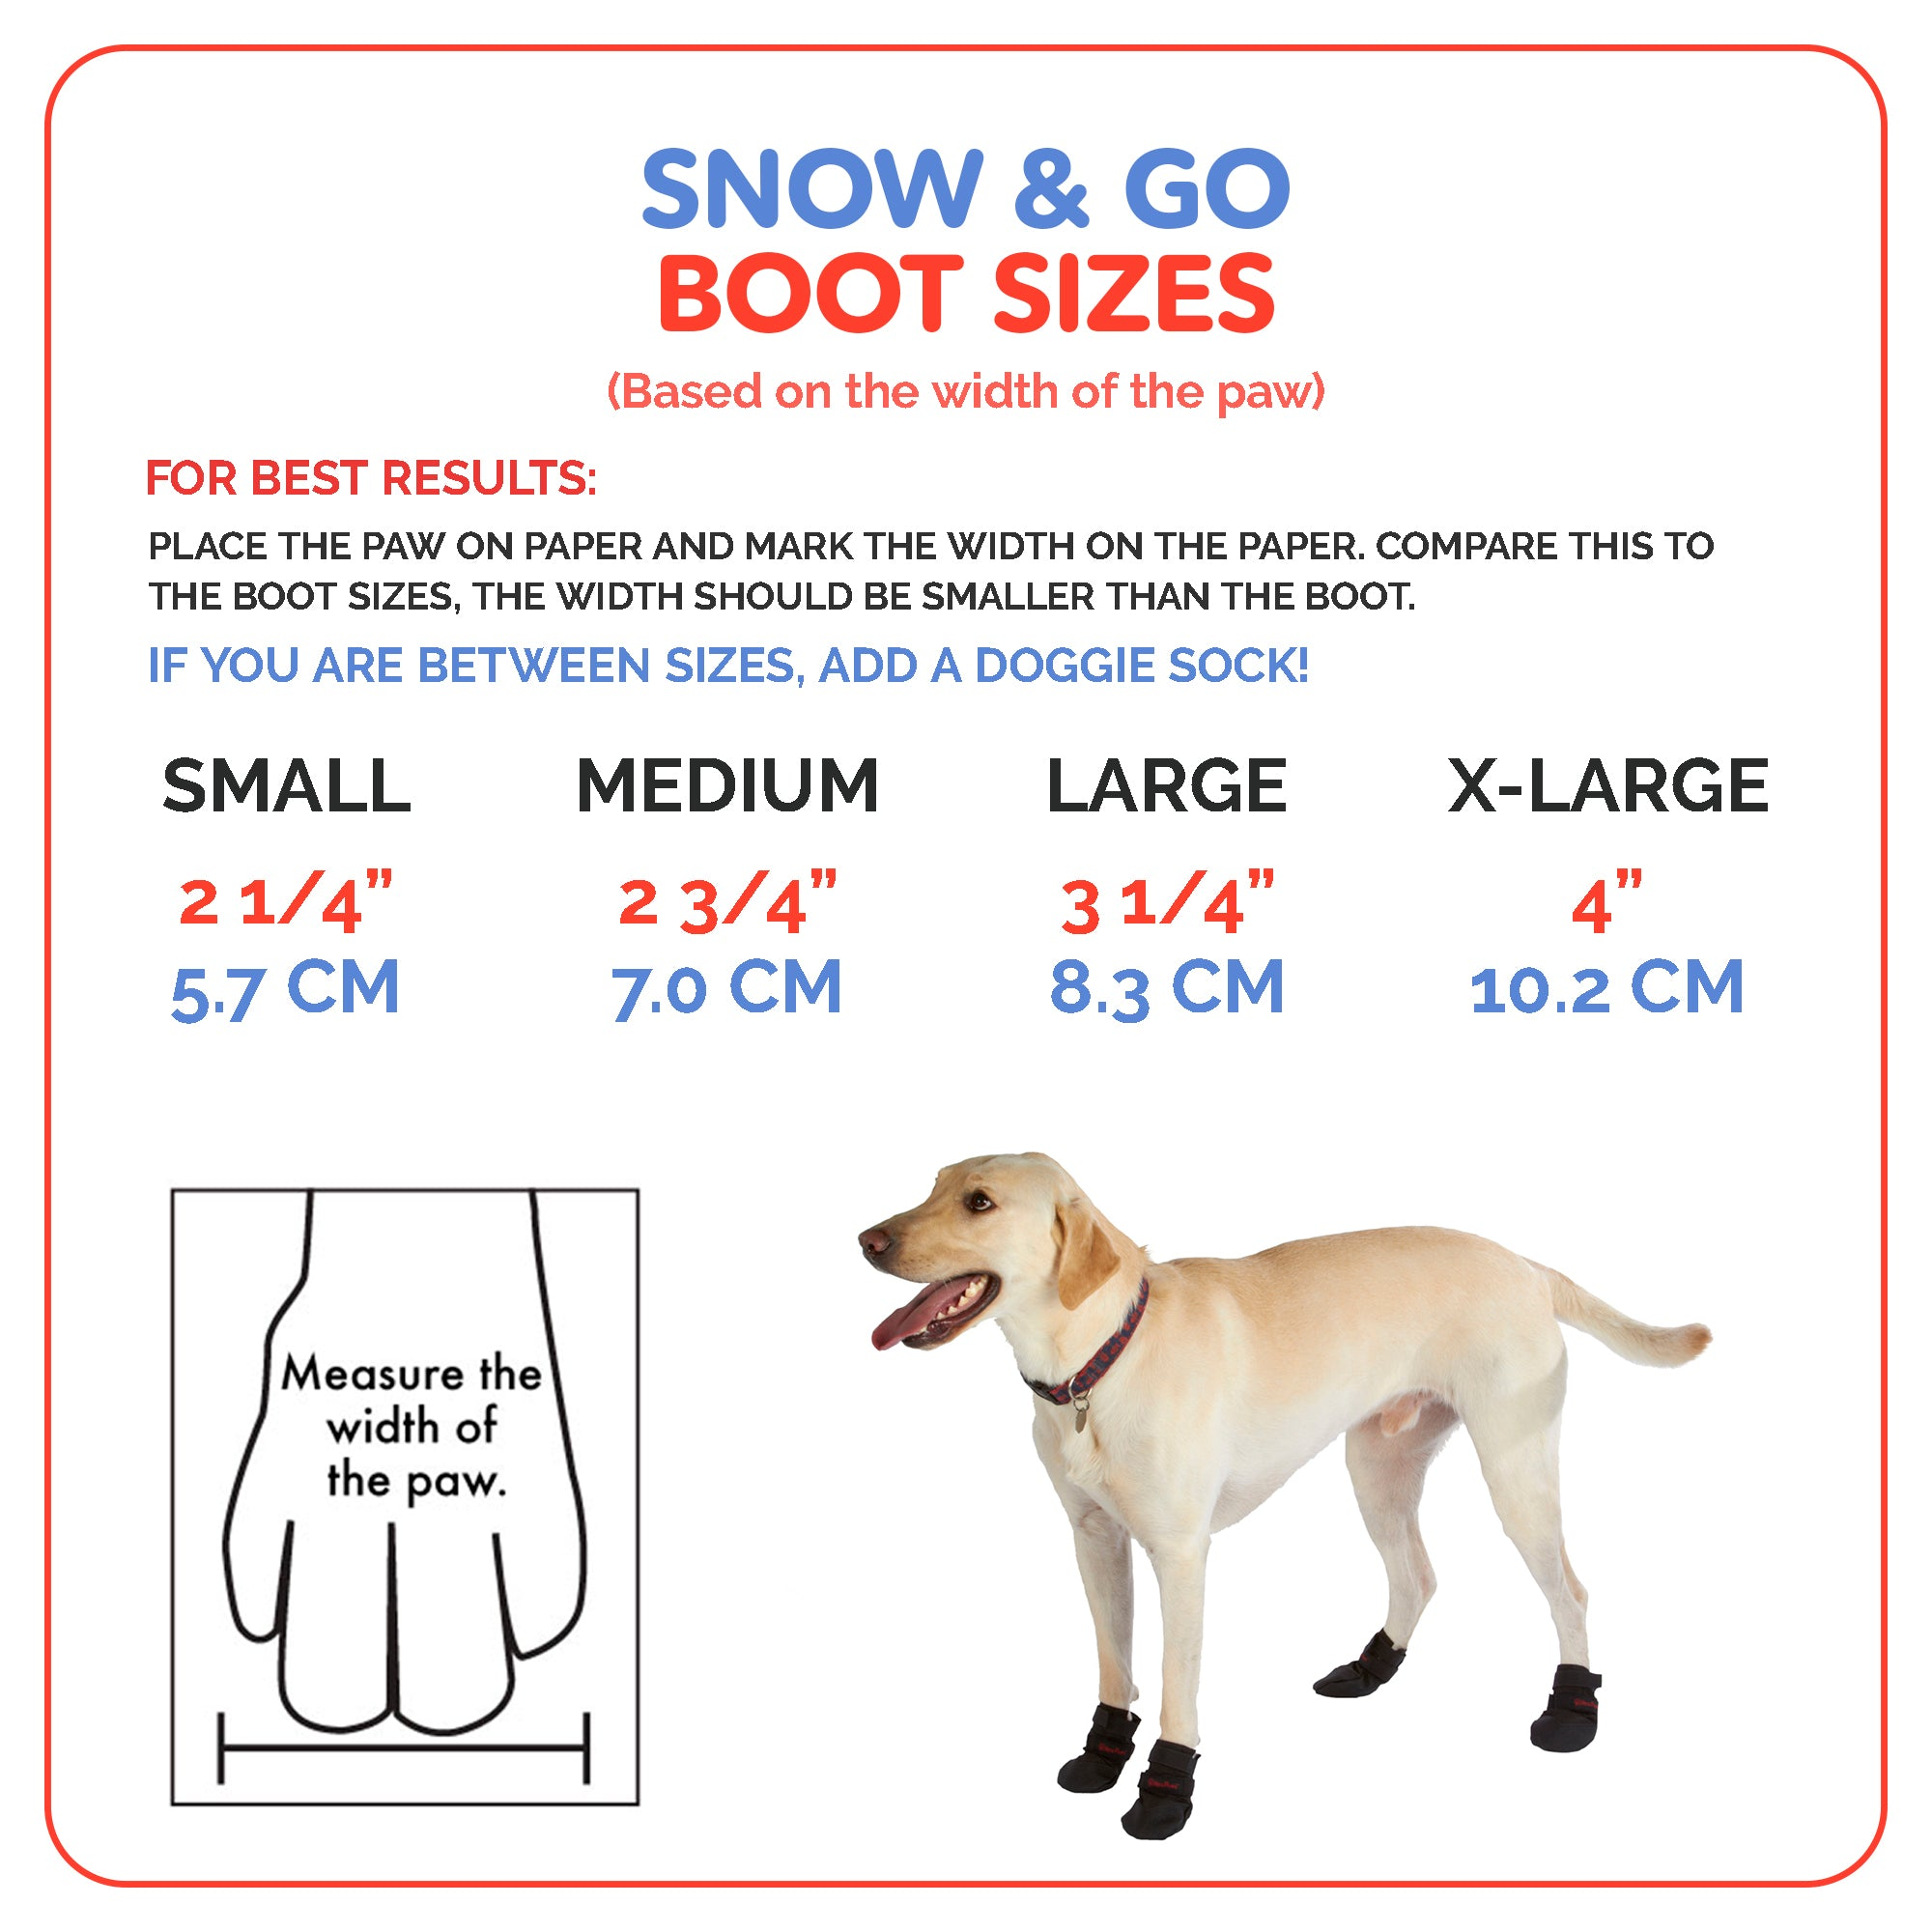 Ultra Paws Snow & Go Dog Boots Sizing Chart